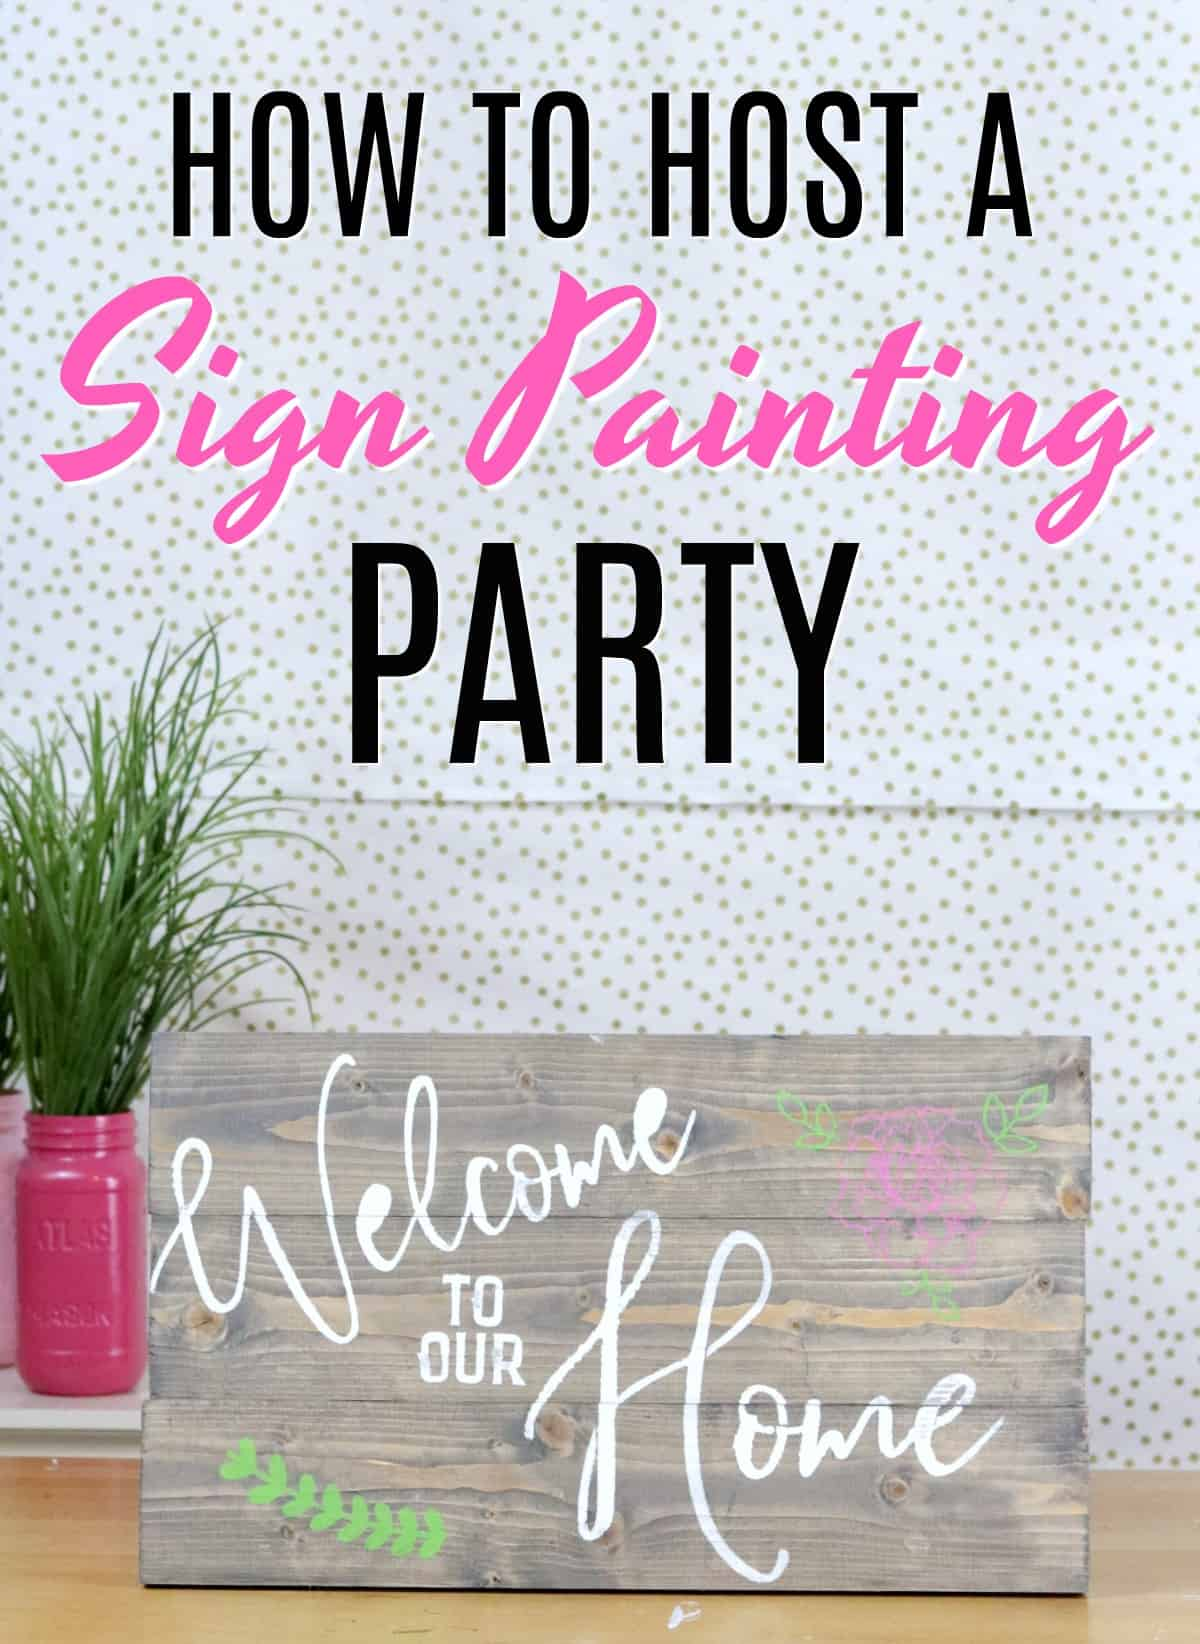 step by step how to host a sign painting party with video. Plus how to build a wood sign and how to stencil a wood sign.